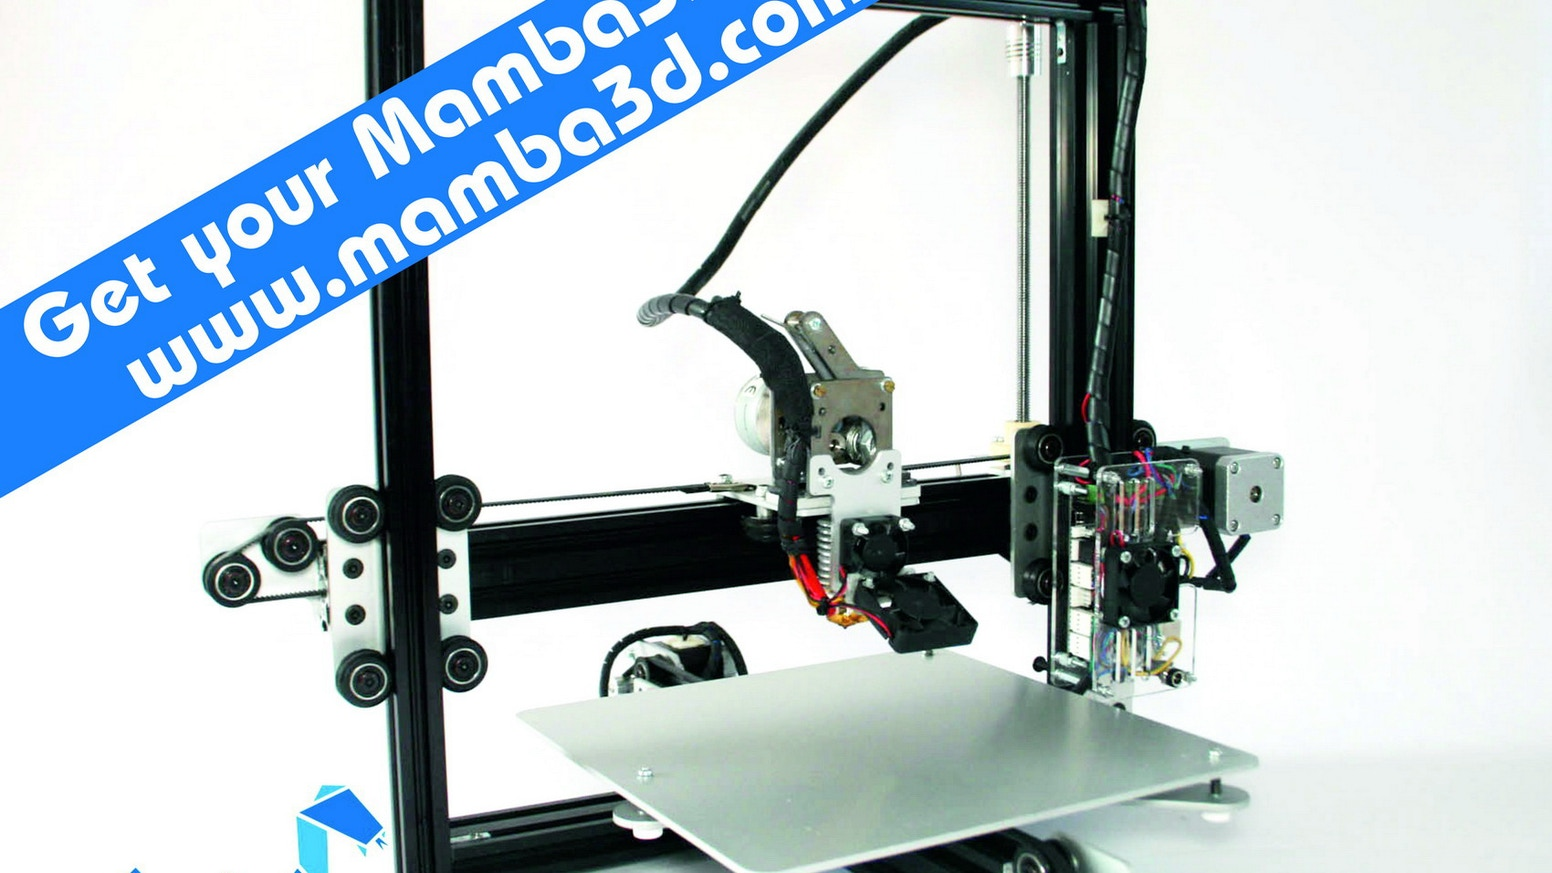 The Mamba3D printer is an affordable, high quality, all-metal, open source 3D-printer with a 200x200x200mm build area.